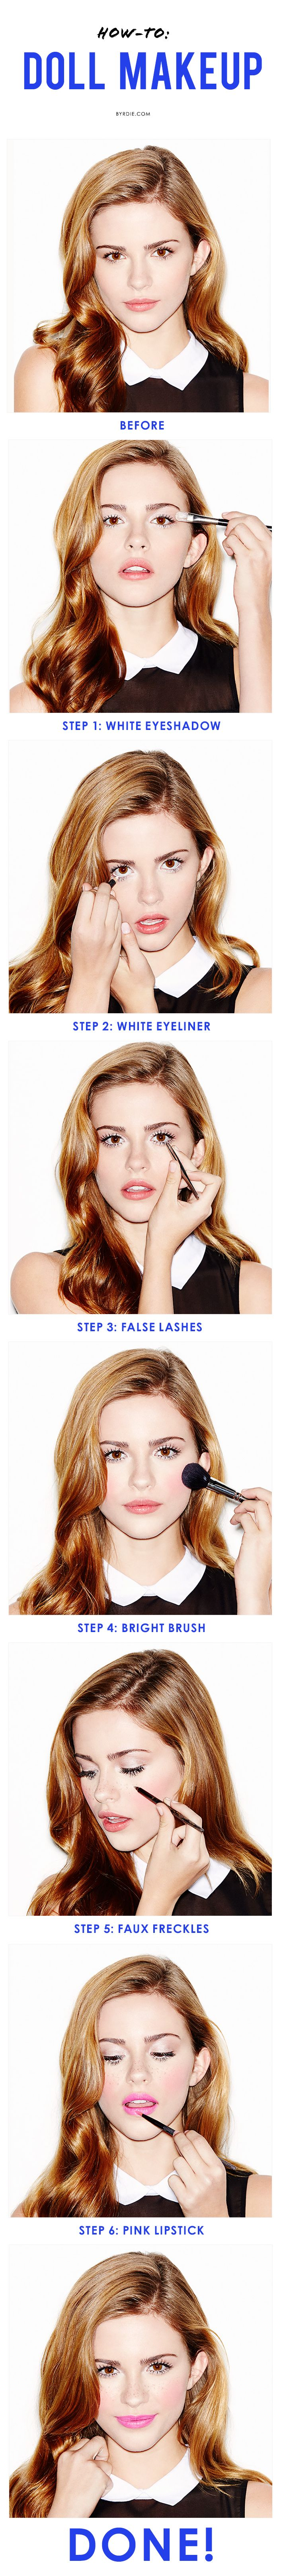 6 steps to the prettiest doll makeup look with an easy tutorial.